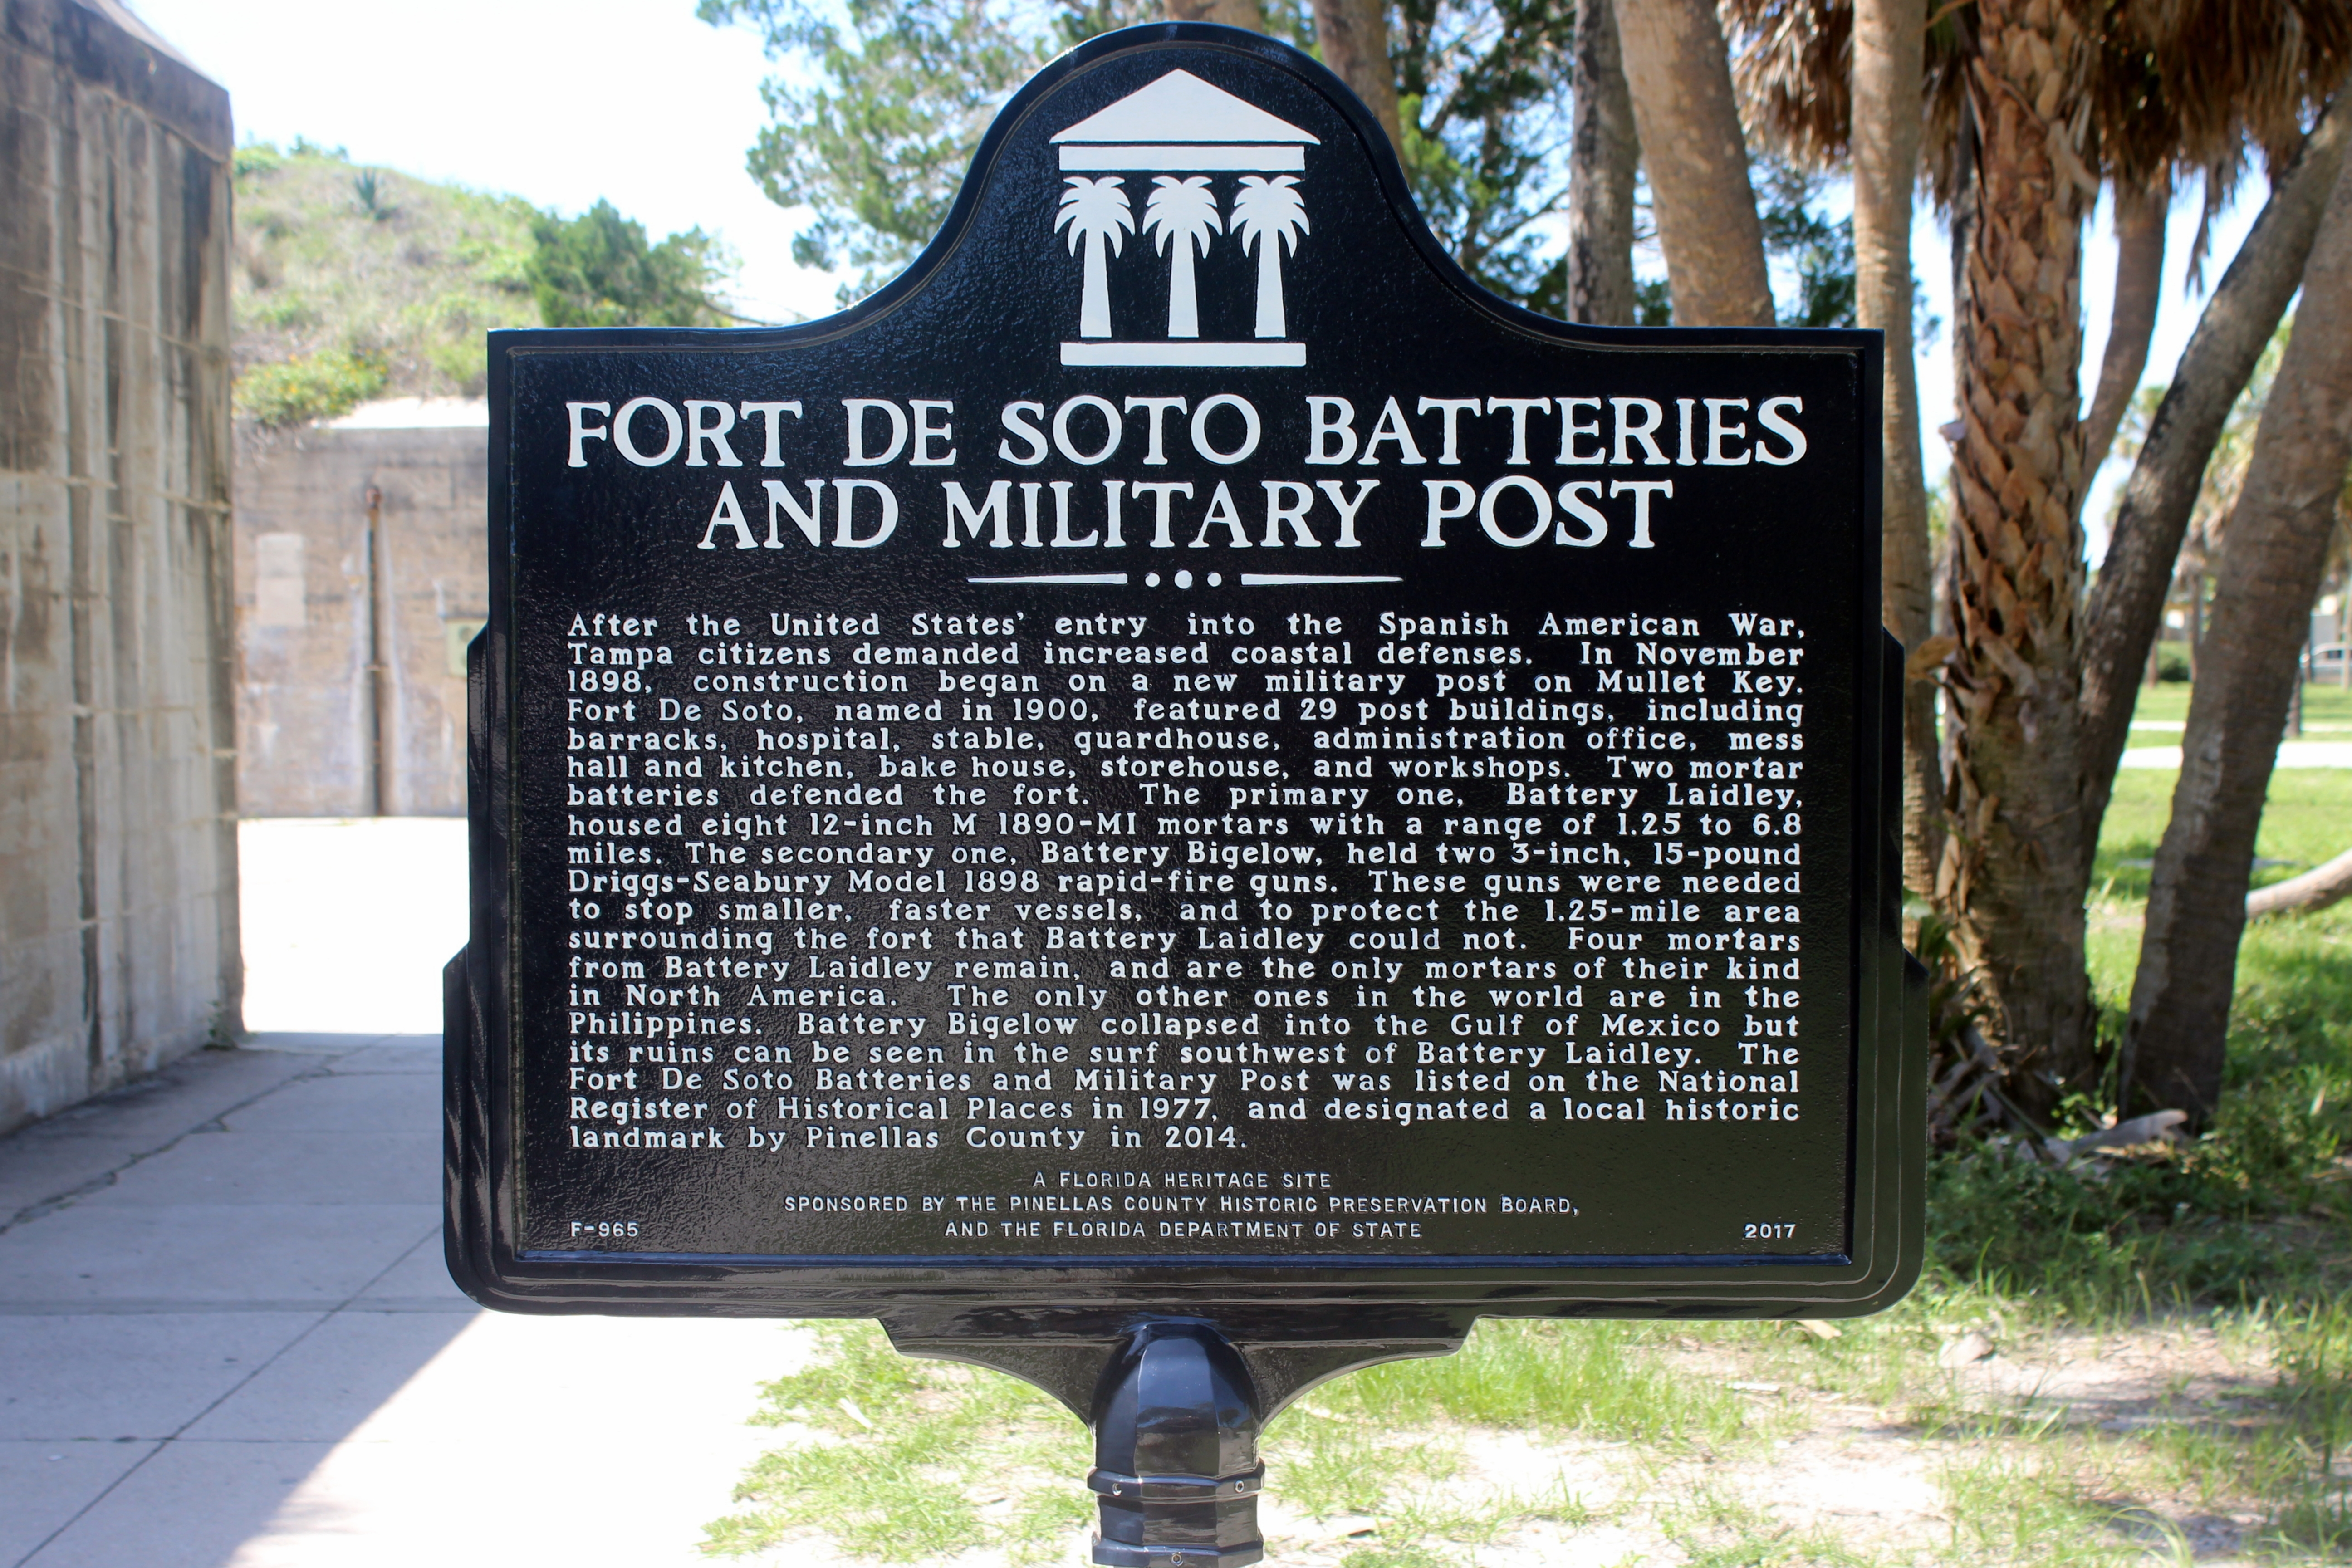 Fort De Soto Batteries and Military Post Marker